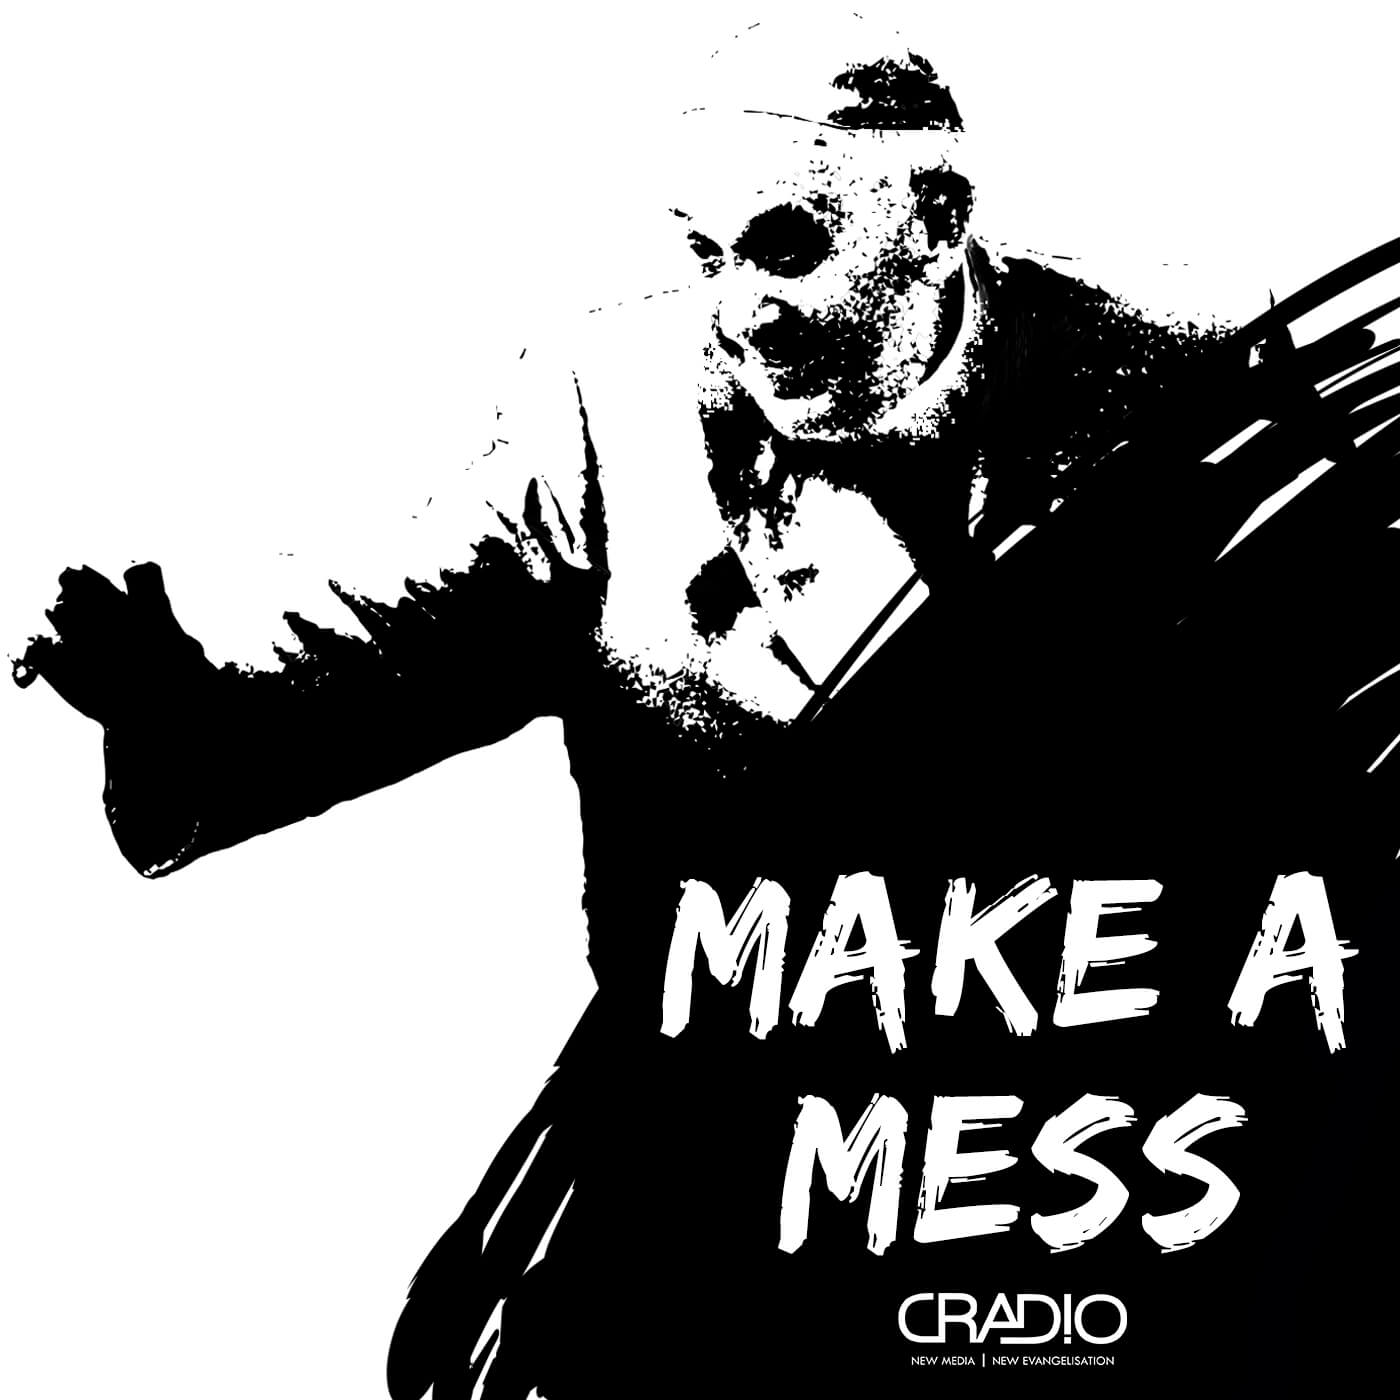 Make a Mess – Cradio